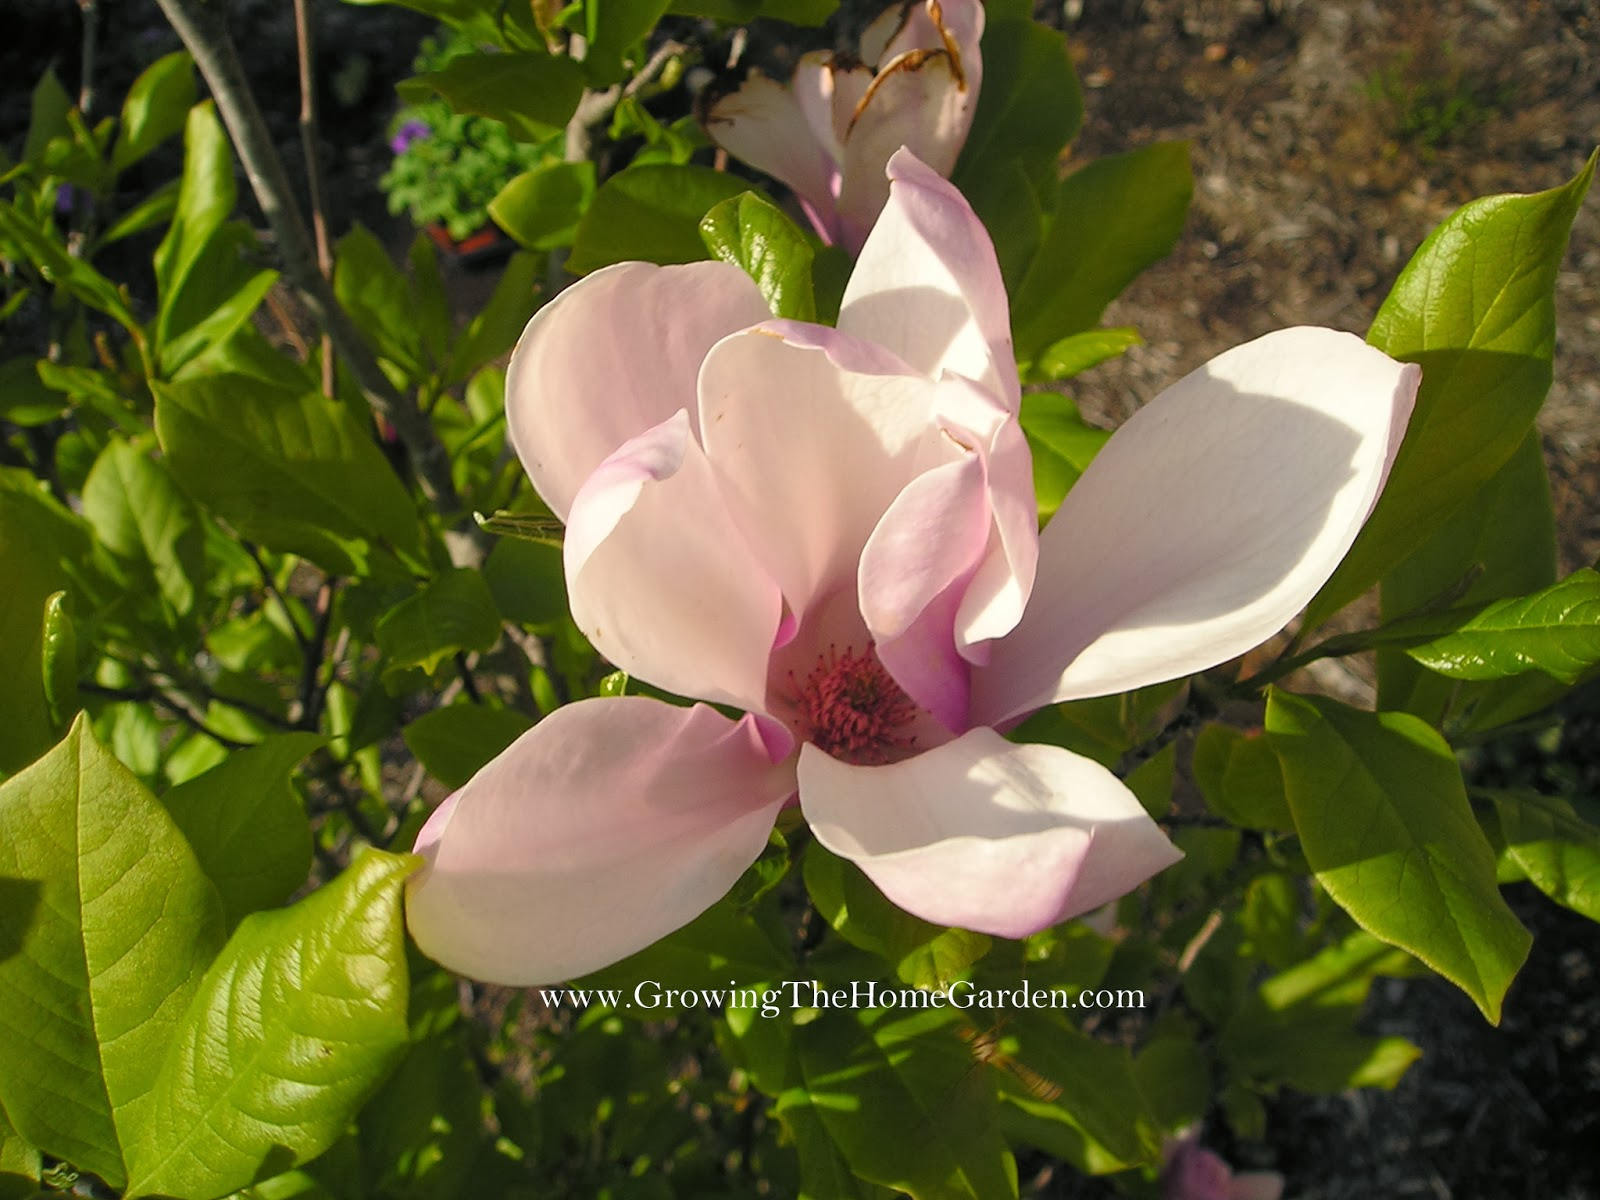 Propagating a Deciduous Magnolia Through Layering